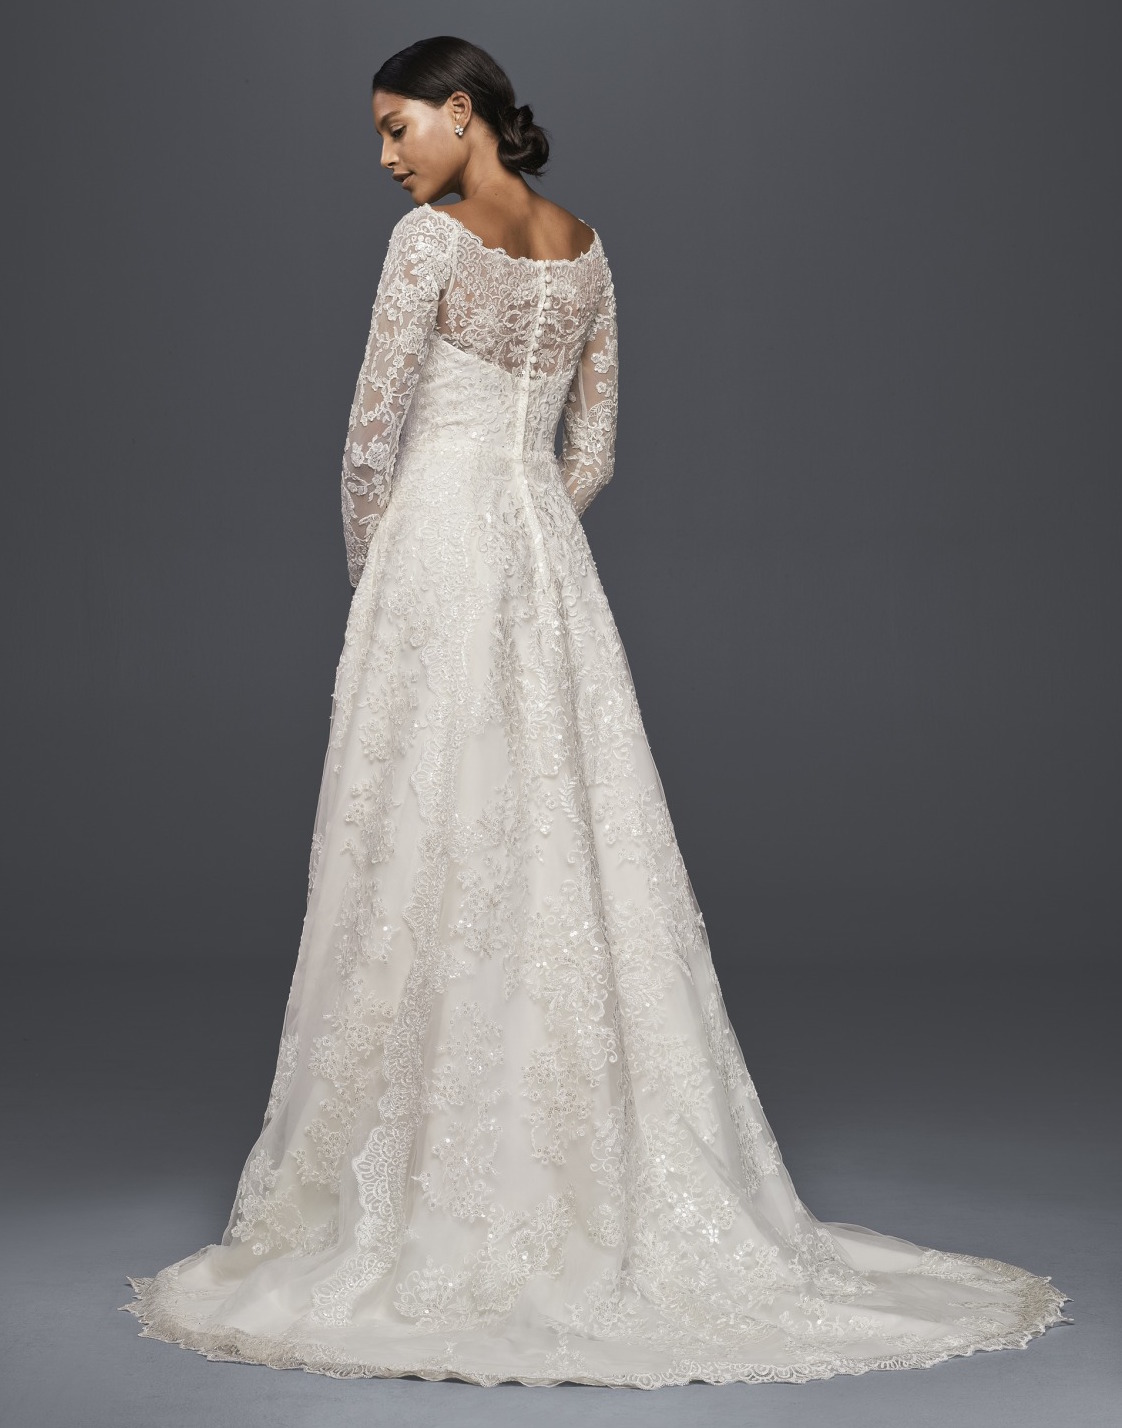 Where to buy a modest wedding dress racked for When to buy wedding dress